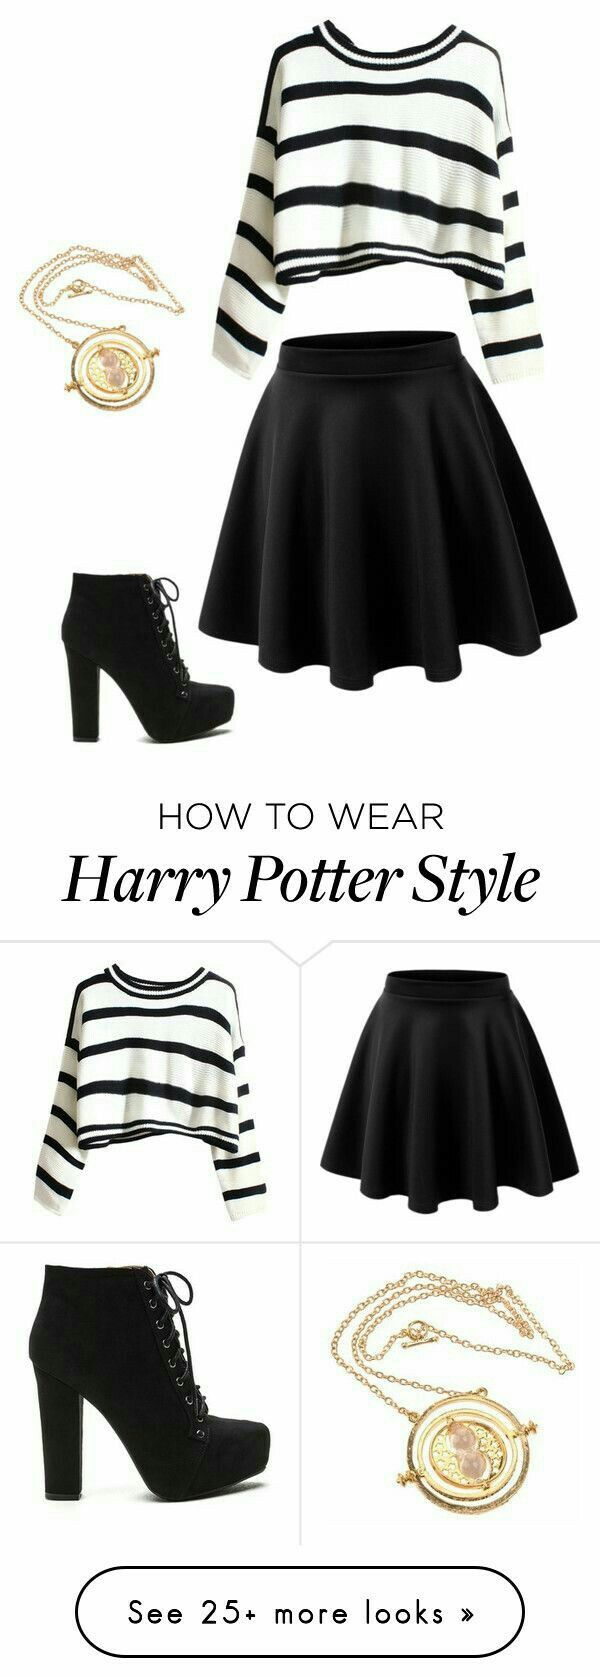 #Ropa #Moda #Outfits #Style #HarryPotter